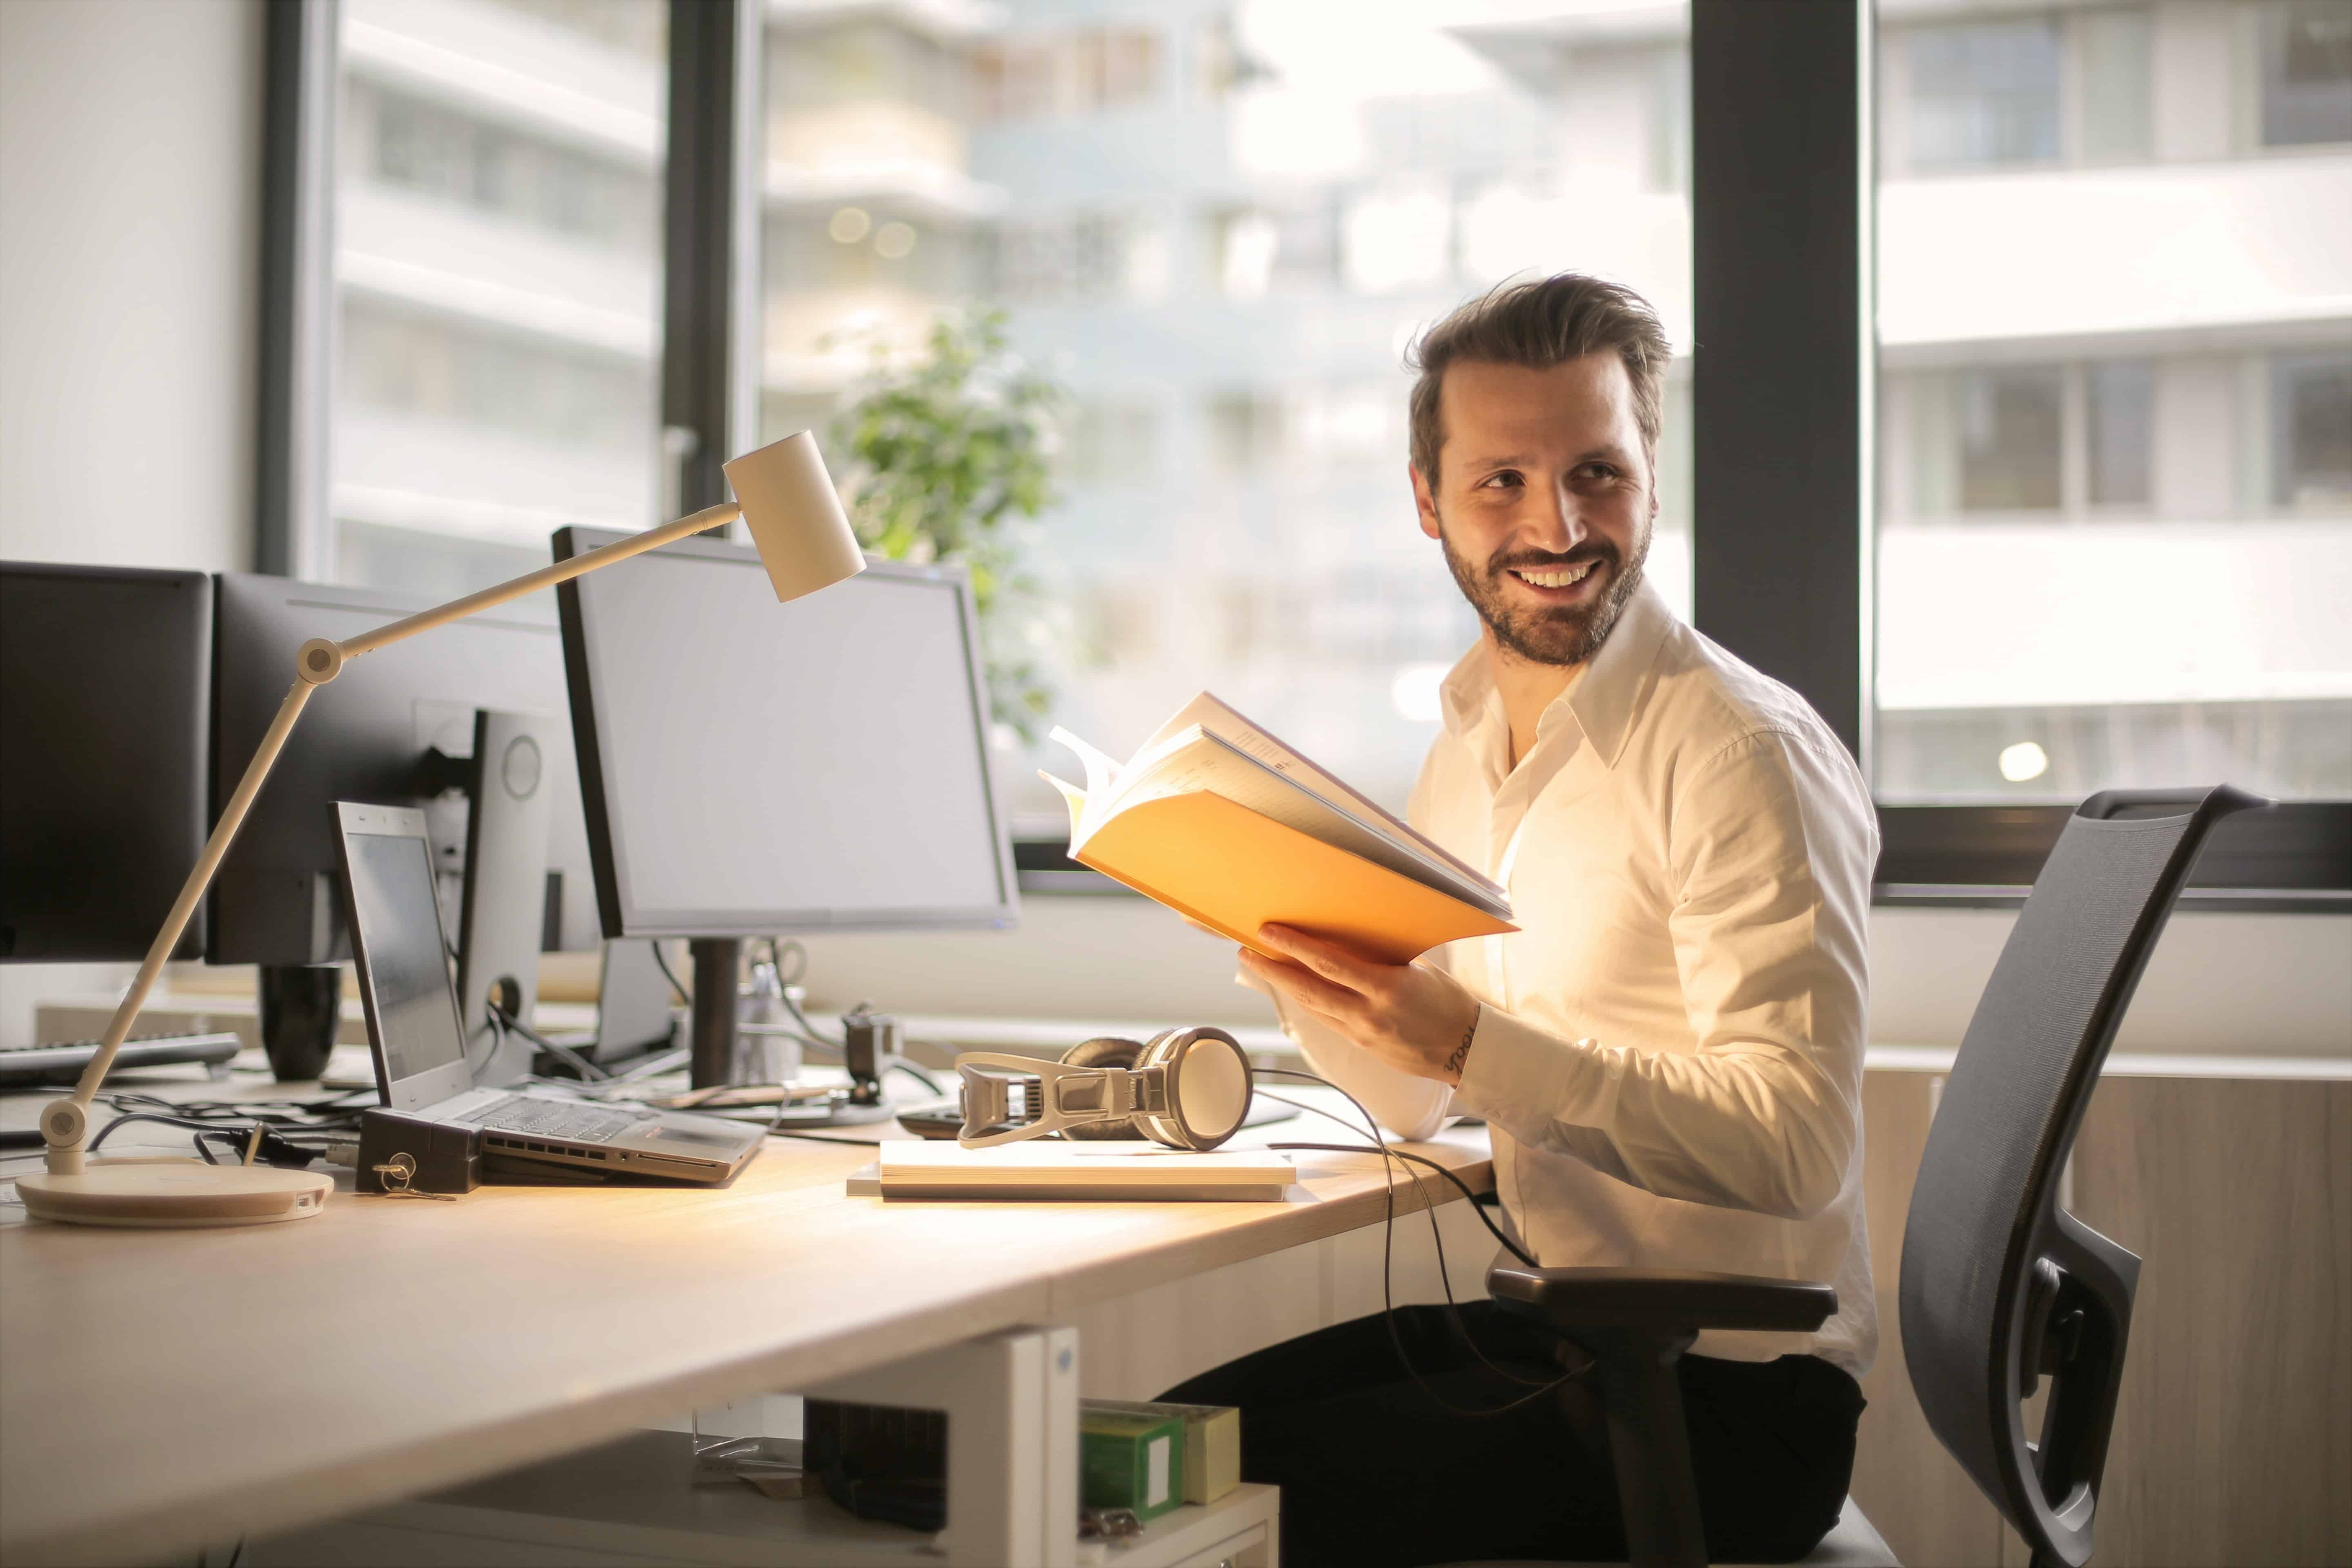 A man who is happy in the workplace.